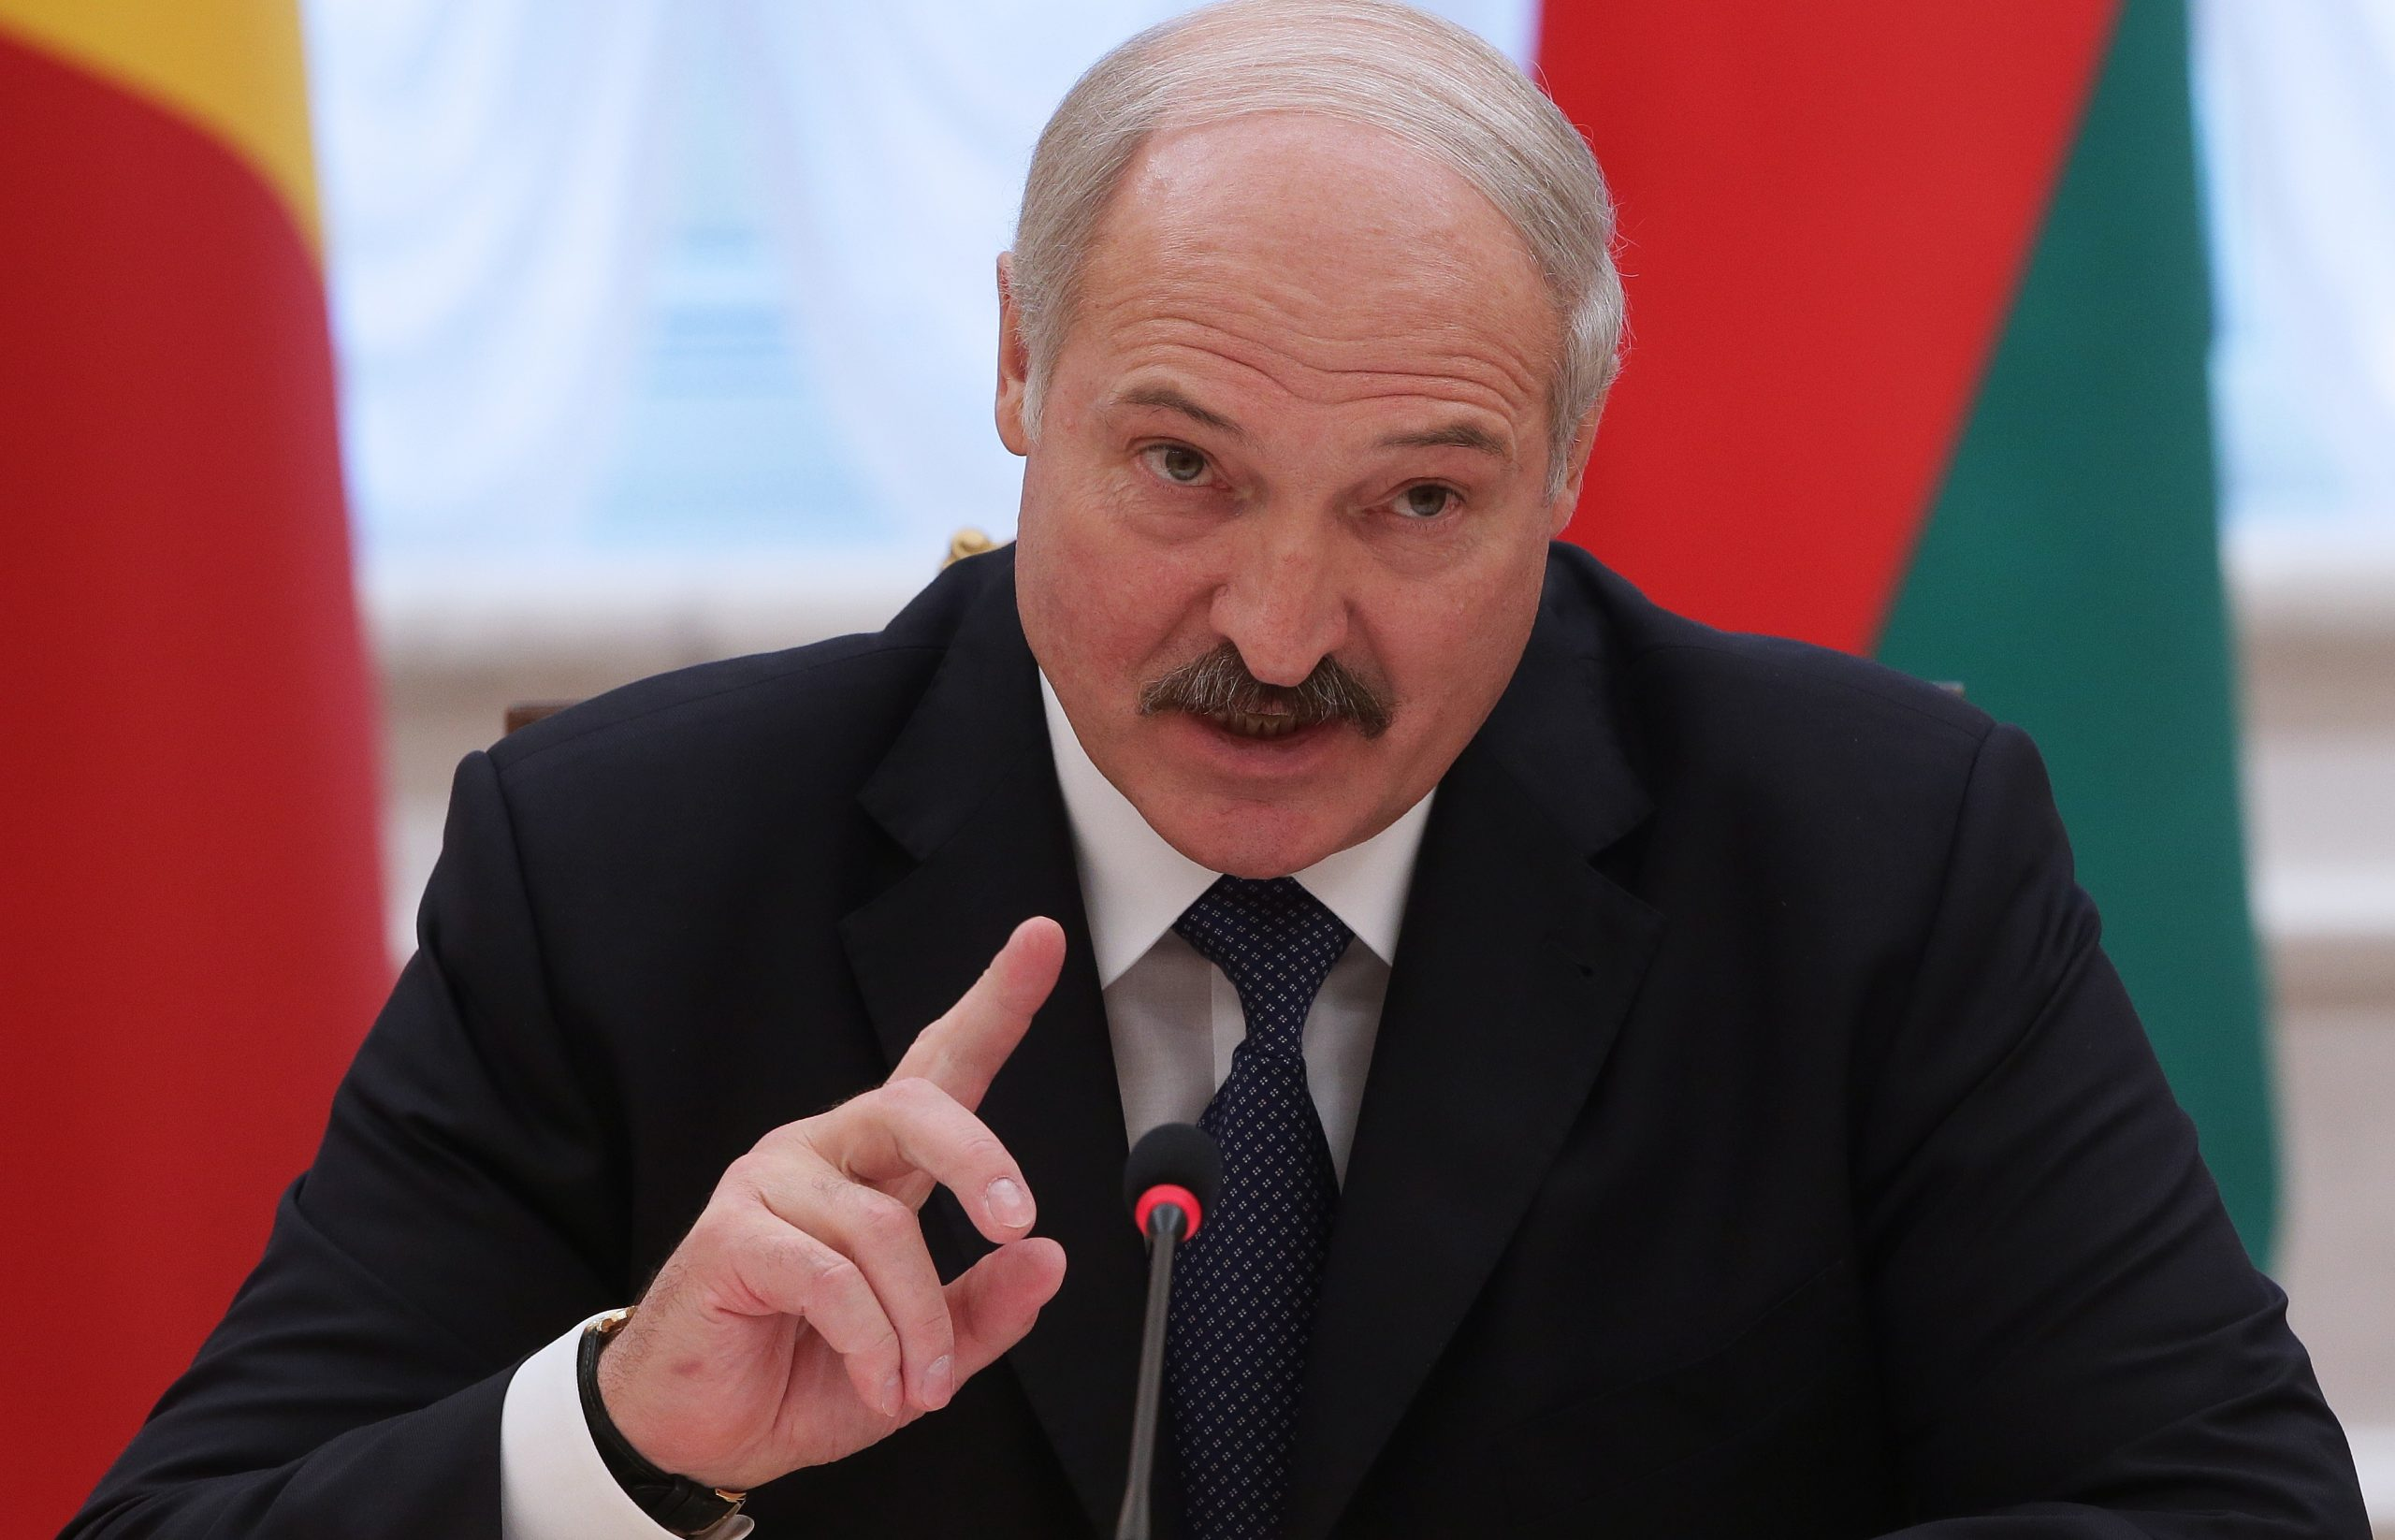 Lukashenko stated that with the launch of the nuclear power plant Belarus becomes a nuclear power country